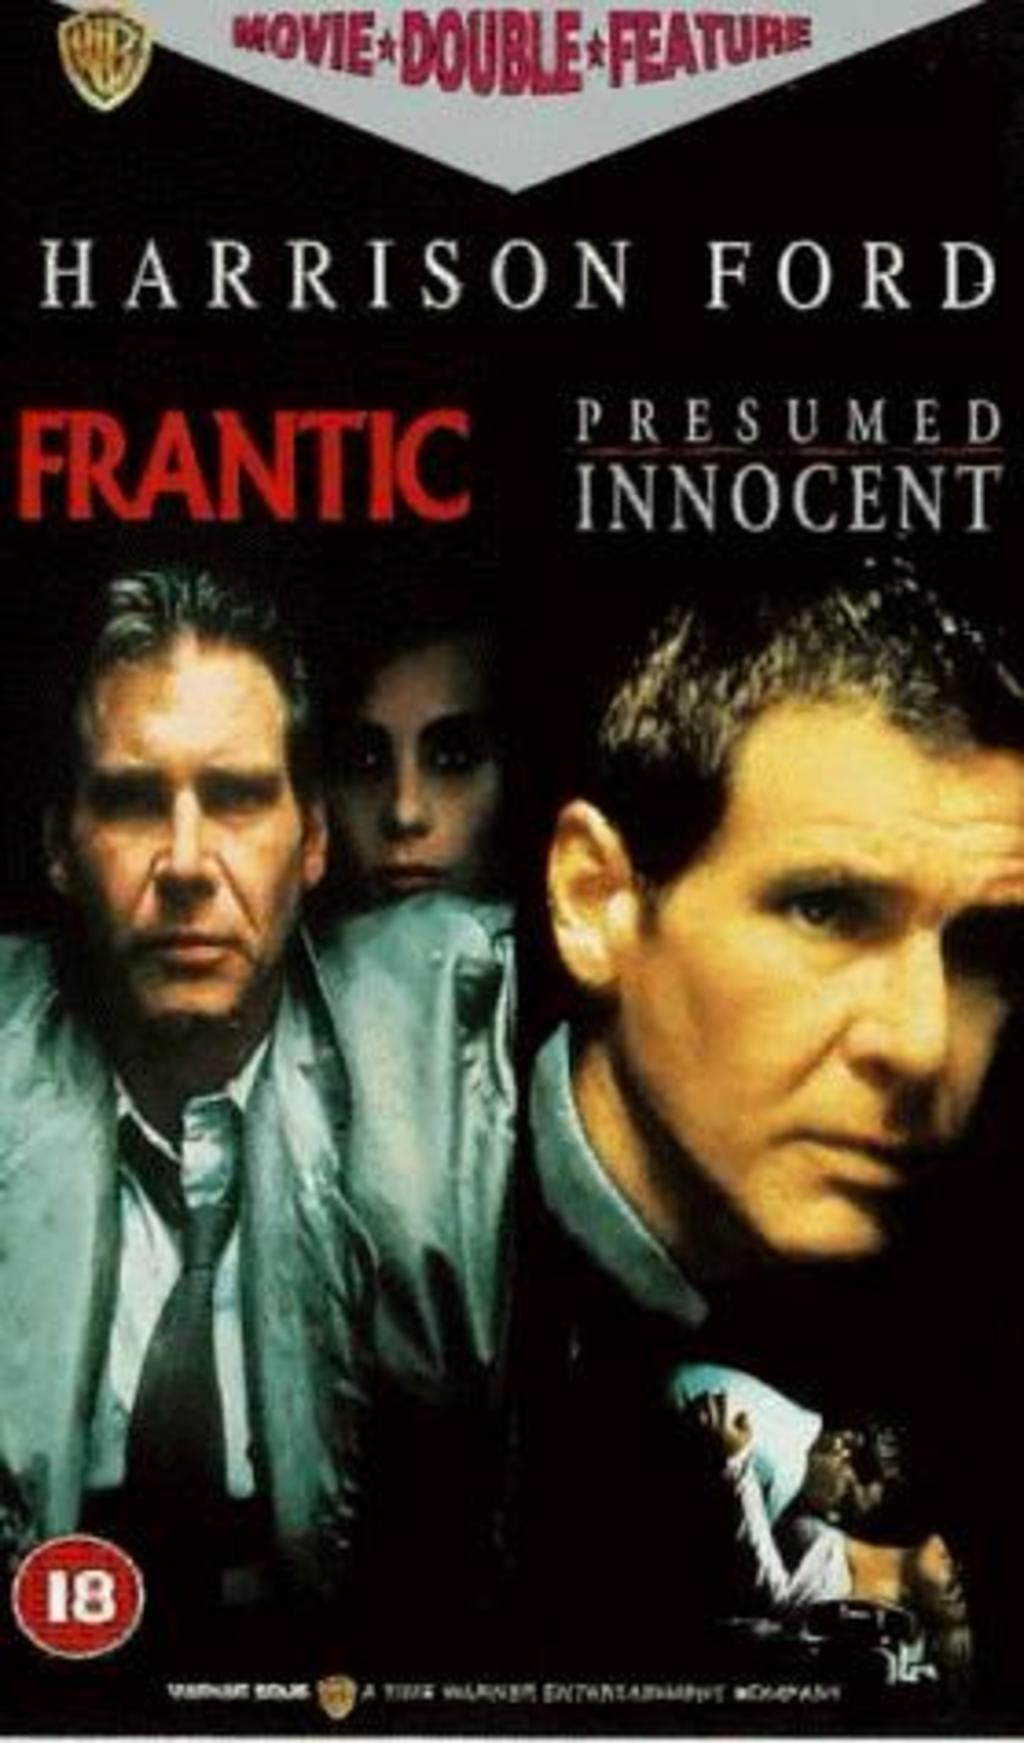 Presumed Innocent Movie Still 6  Watch Presumed Innocent